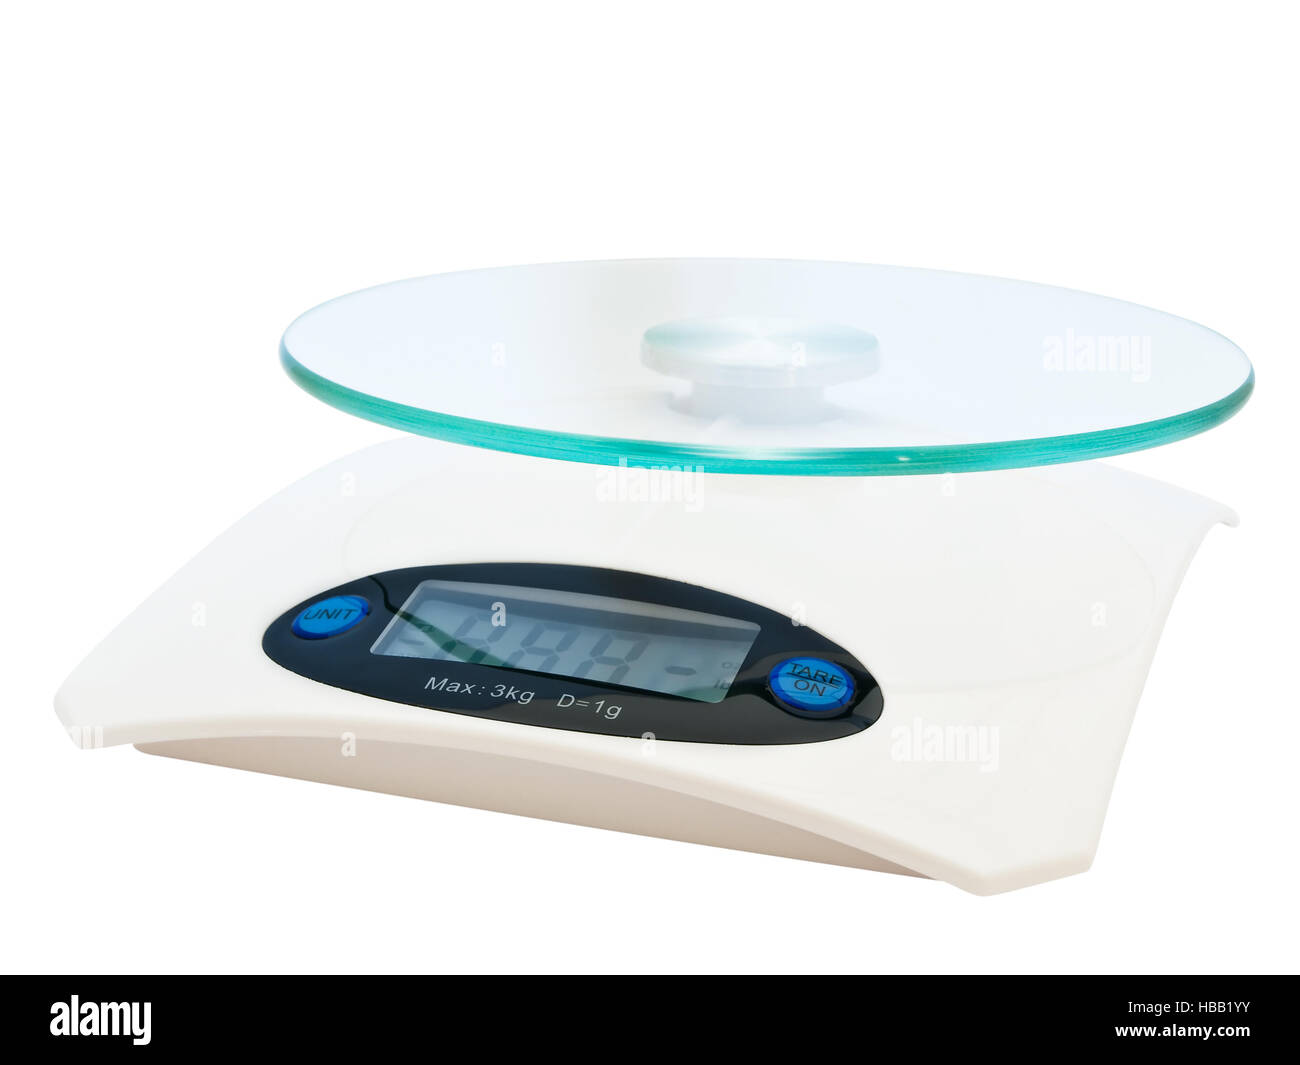 Scales - Stock Image